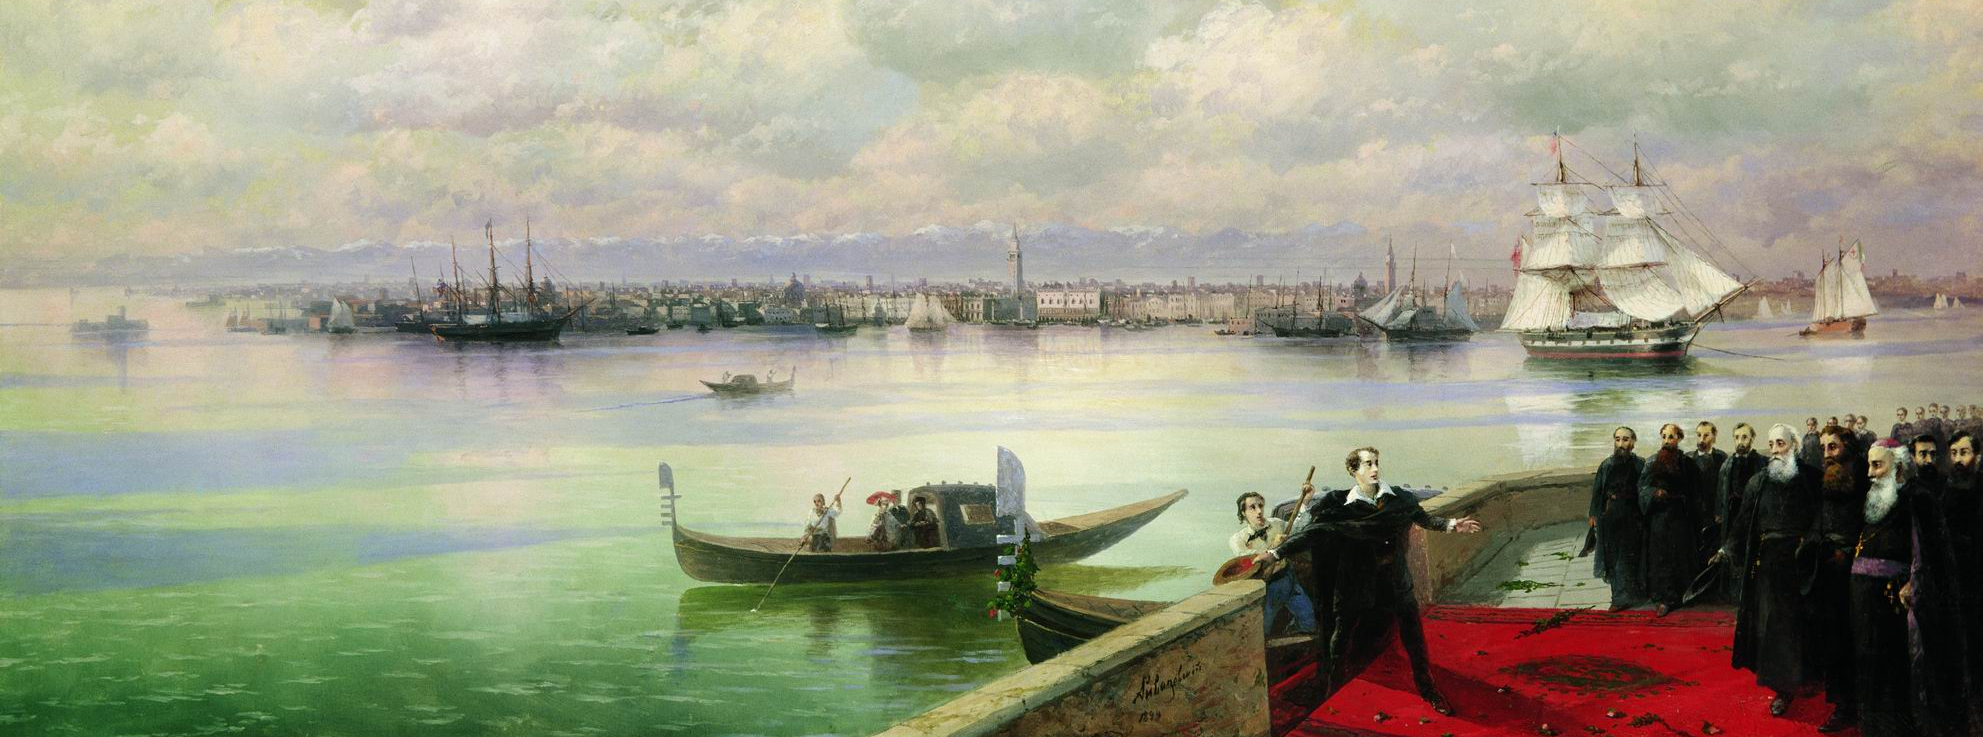 Byron's visit to the island of San Lazzaro, Venice - painted by Ivan Aivazovsky (1899)